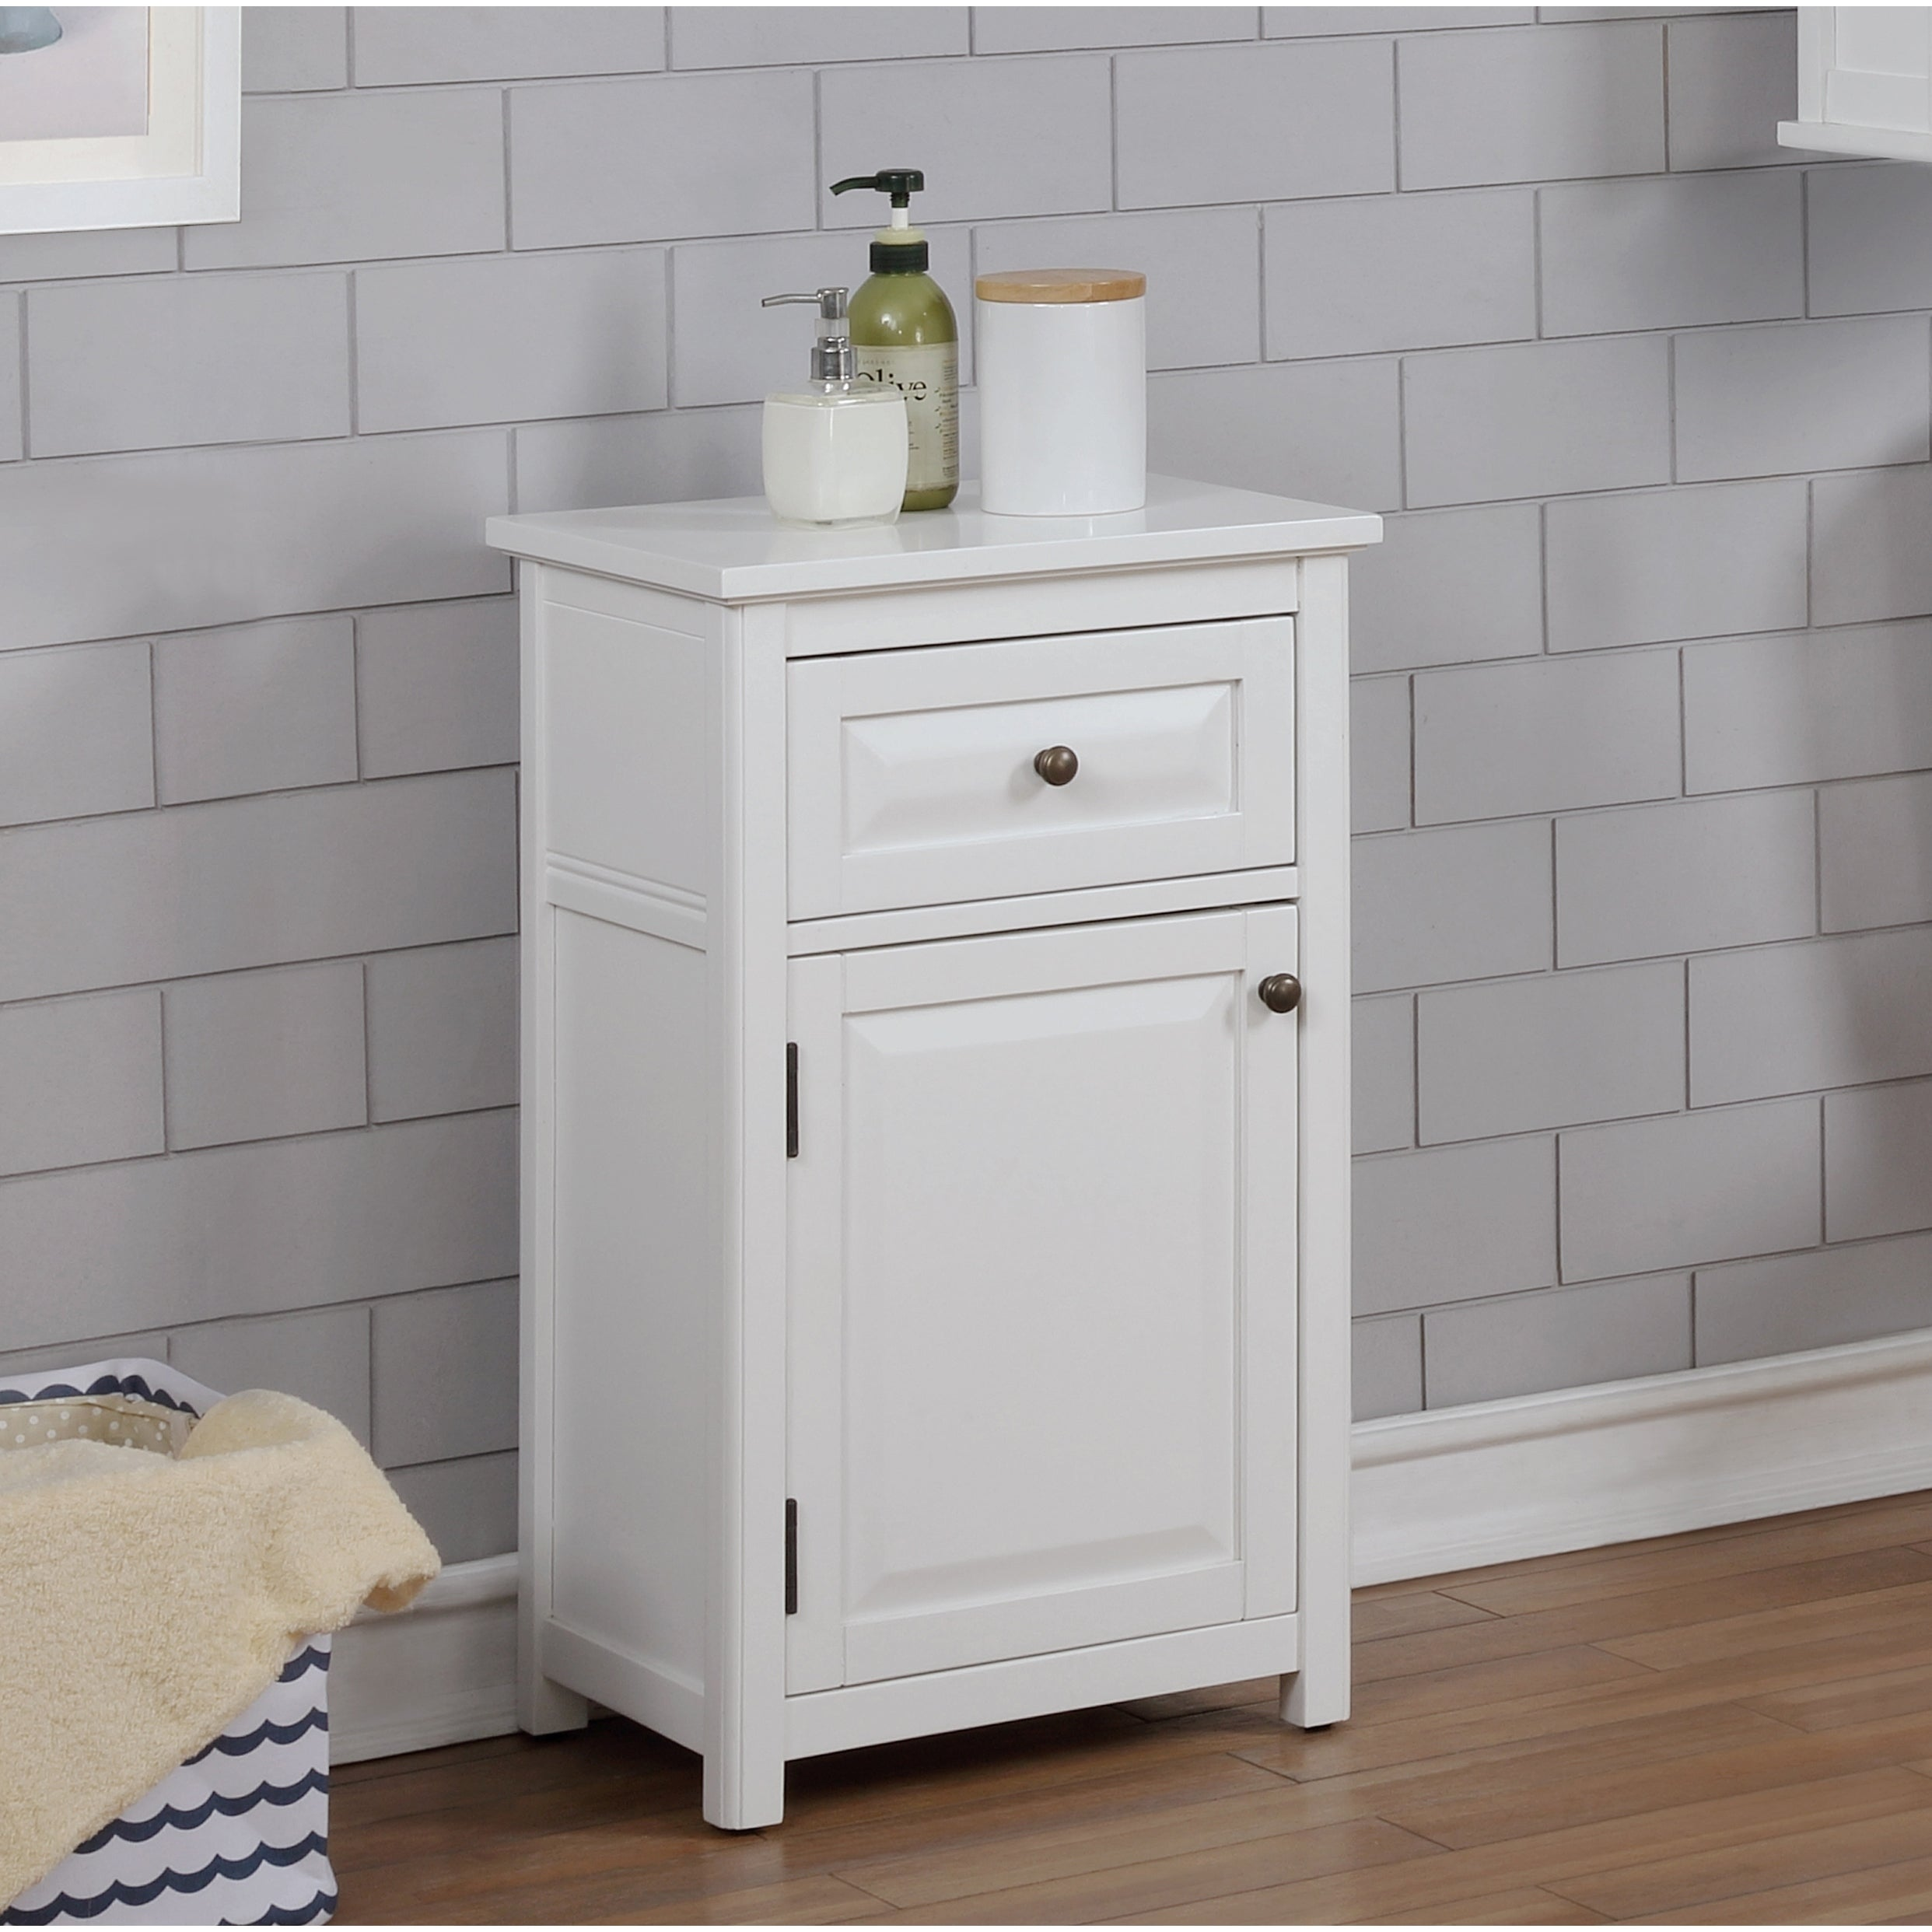 Bathroom 17 X 29 Storage Cabinet